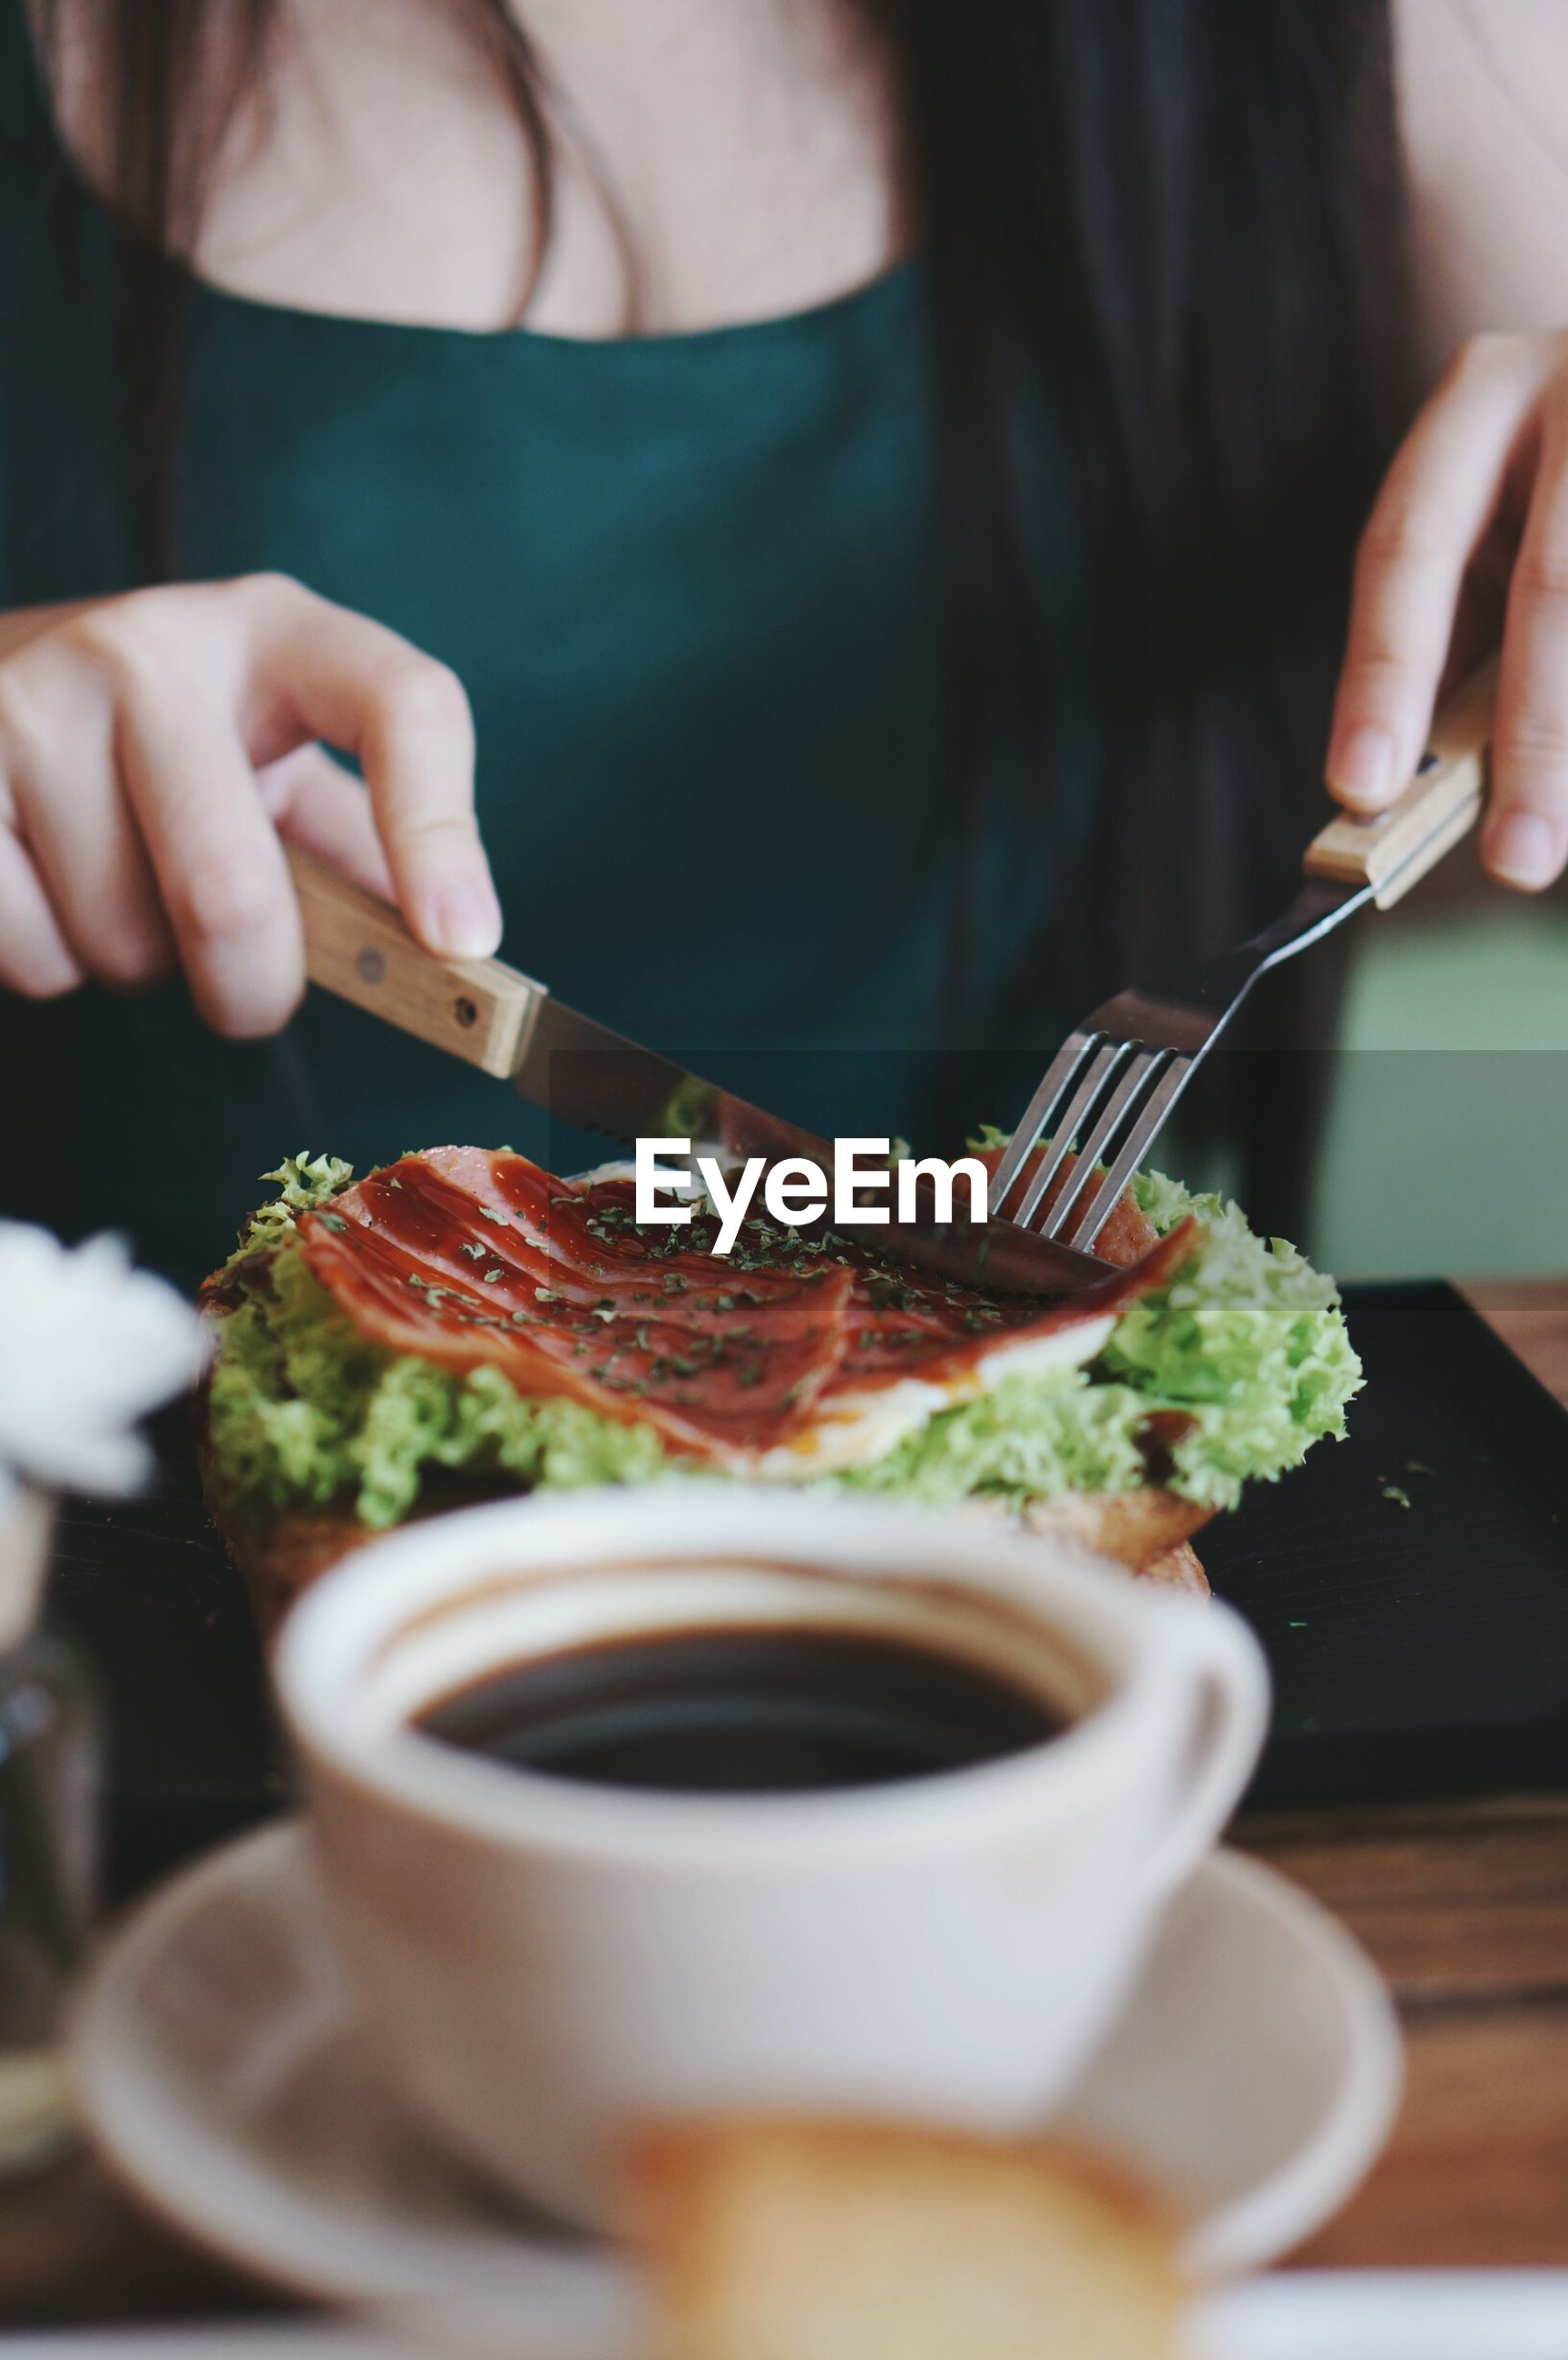 Midsection of woman using cutlery while cutting food